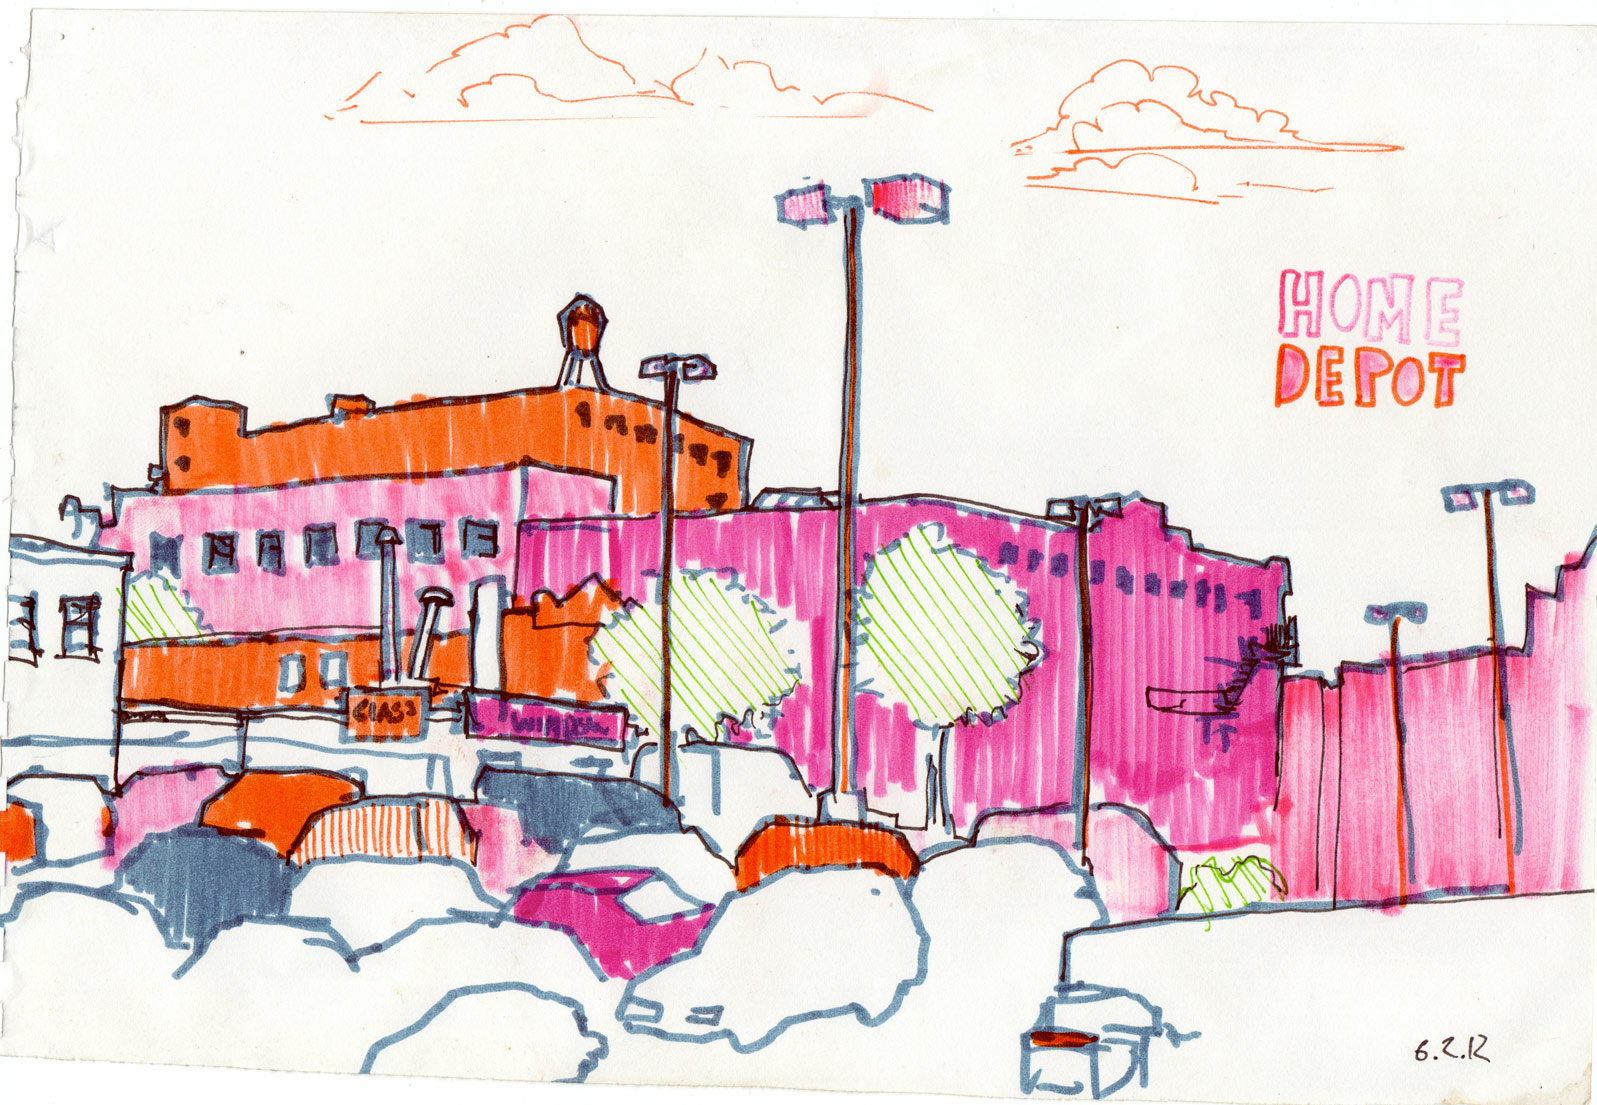 Home Depot 11x17 pen and ink on paper